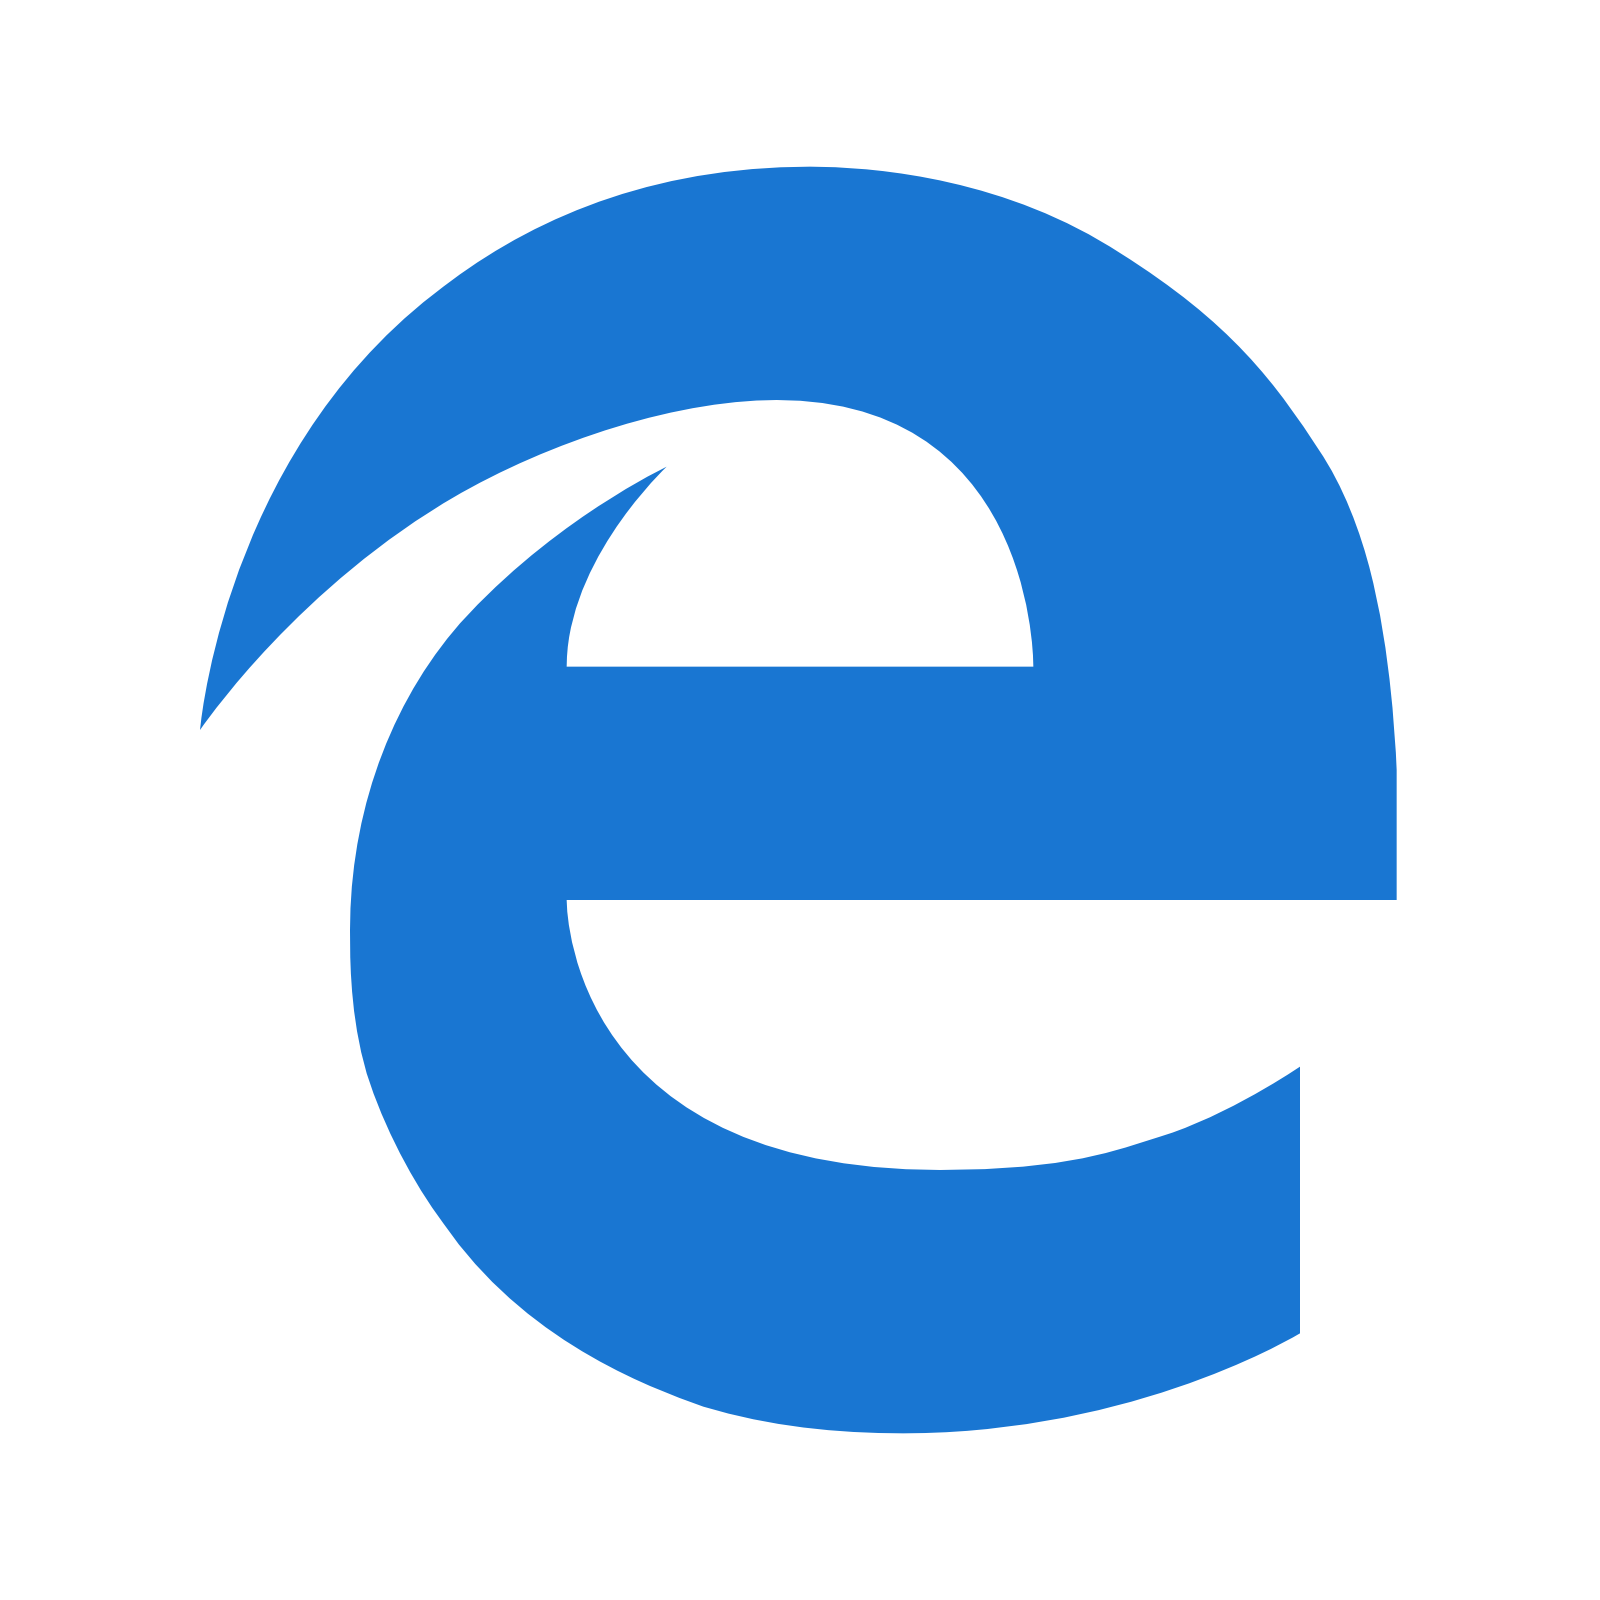 ms_edge1600.png